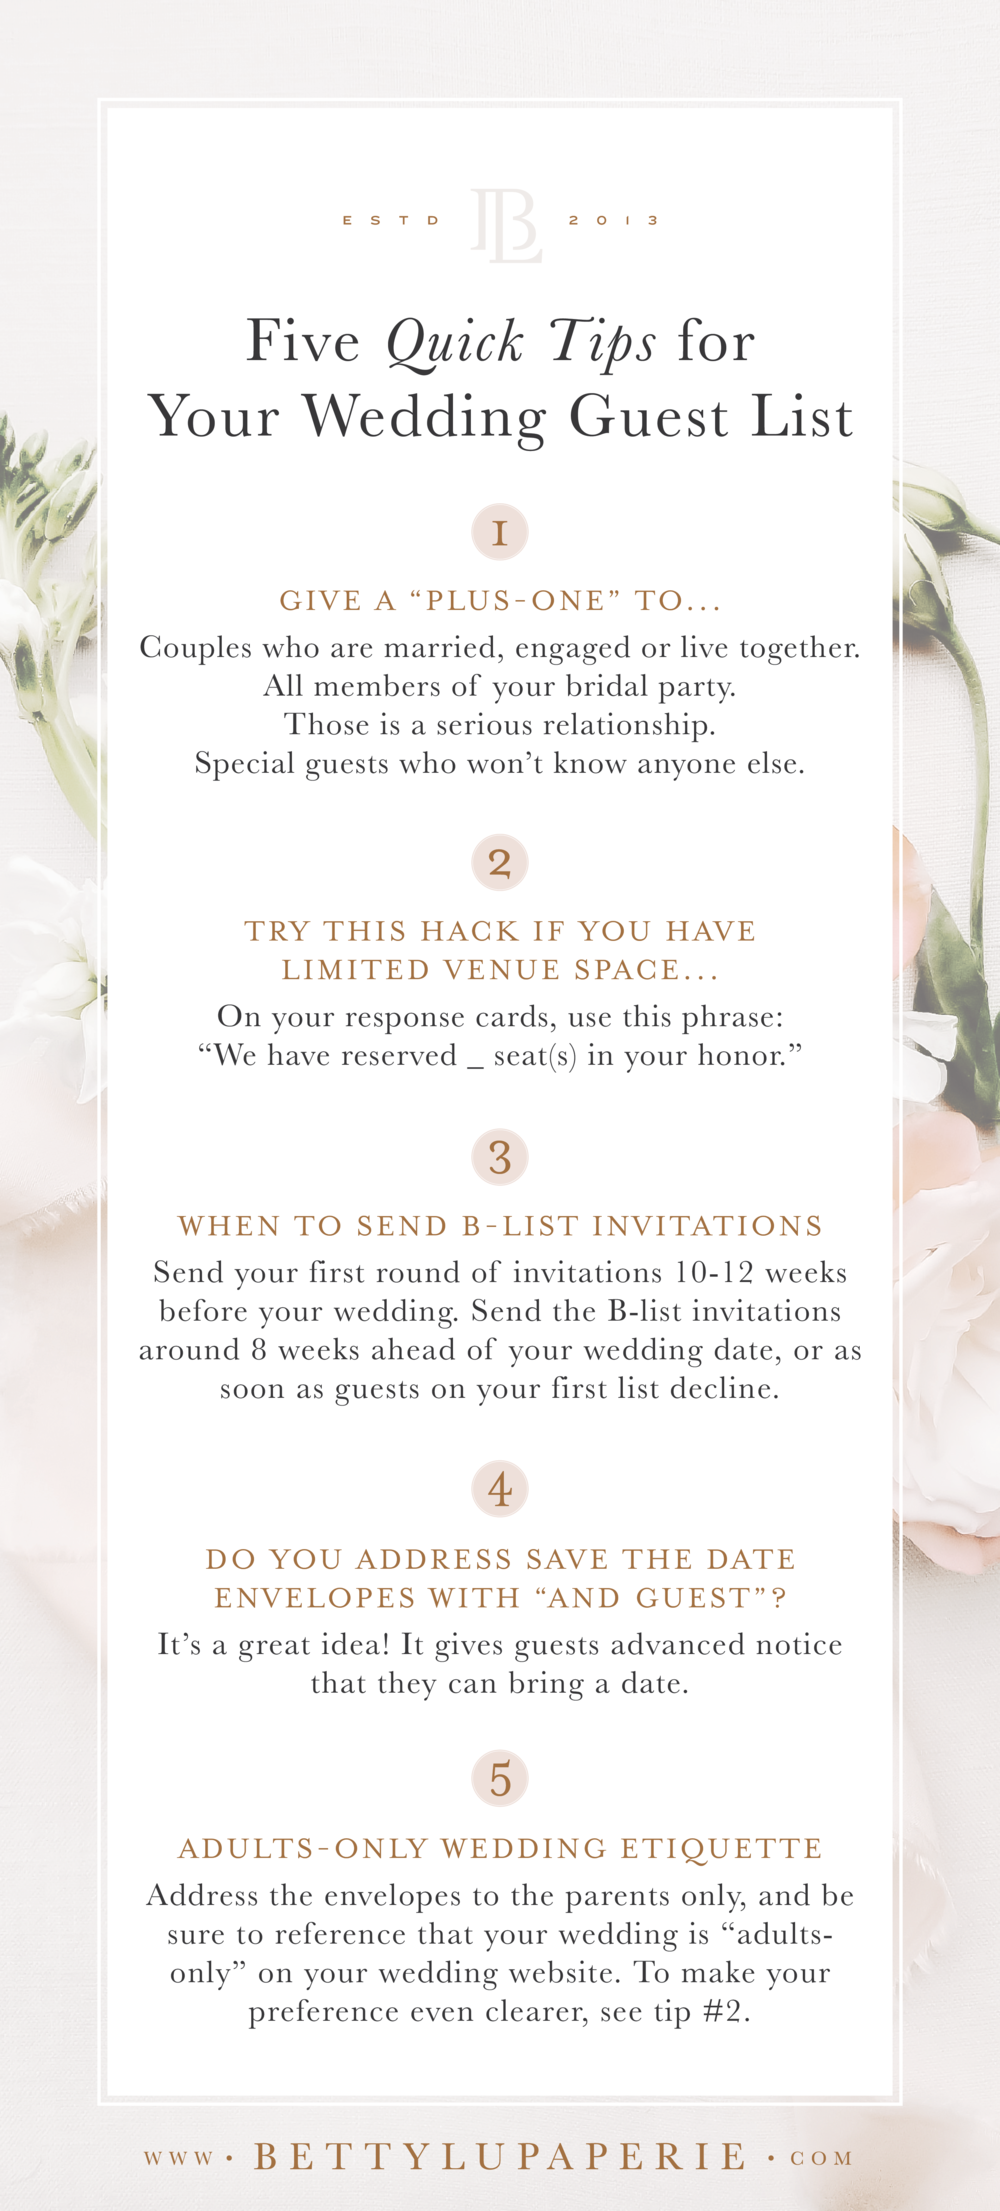 Wedding Guest List Etiquette Betty Lu Paperie Wedding Invitation Hacks Wedding Guest List Etiquette Wedding Guest List